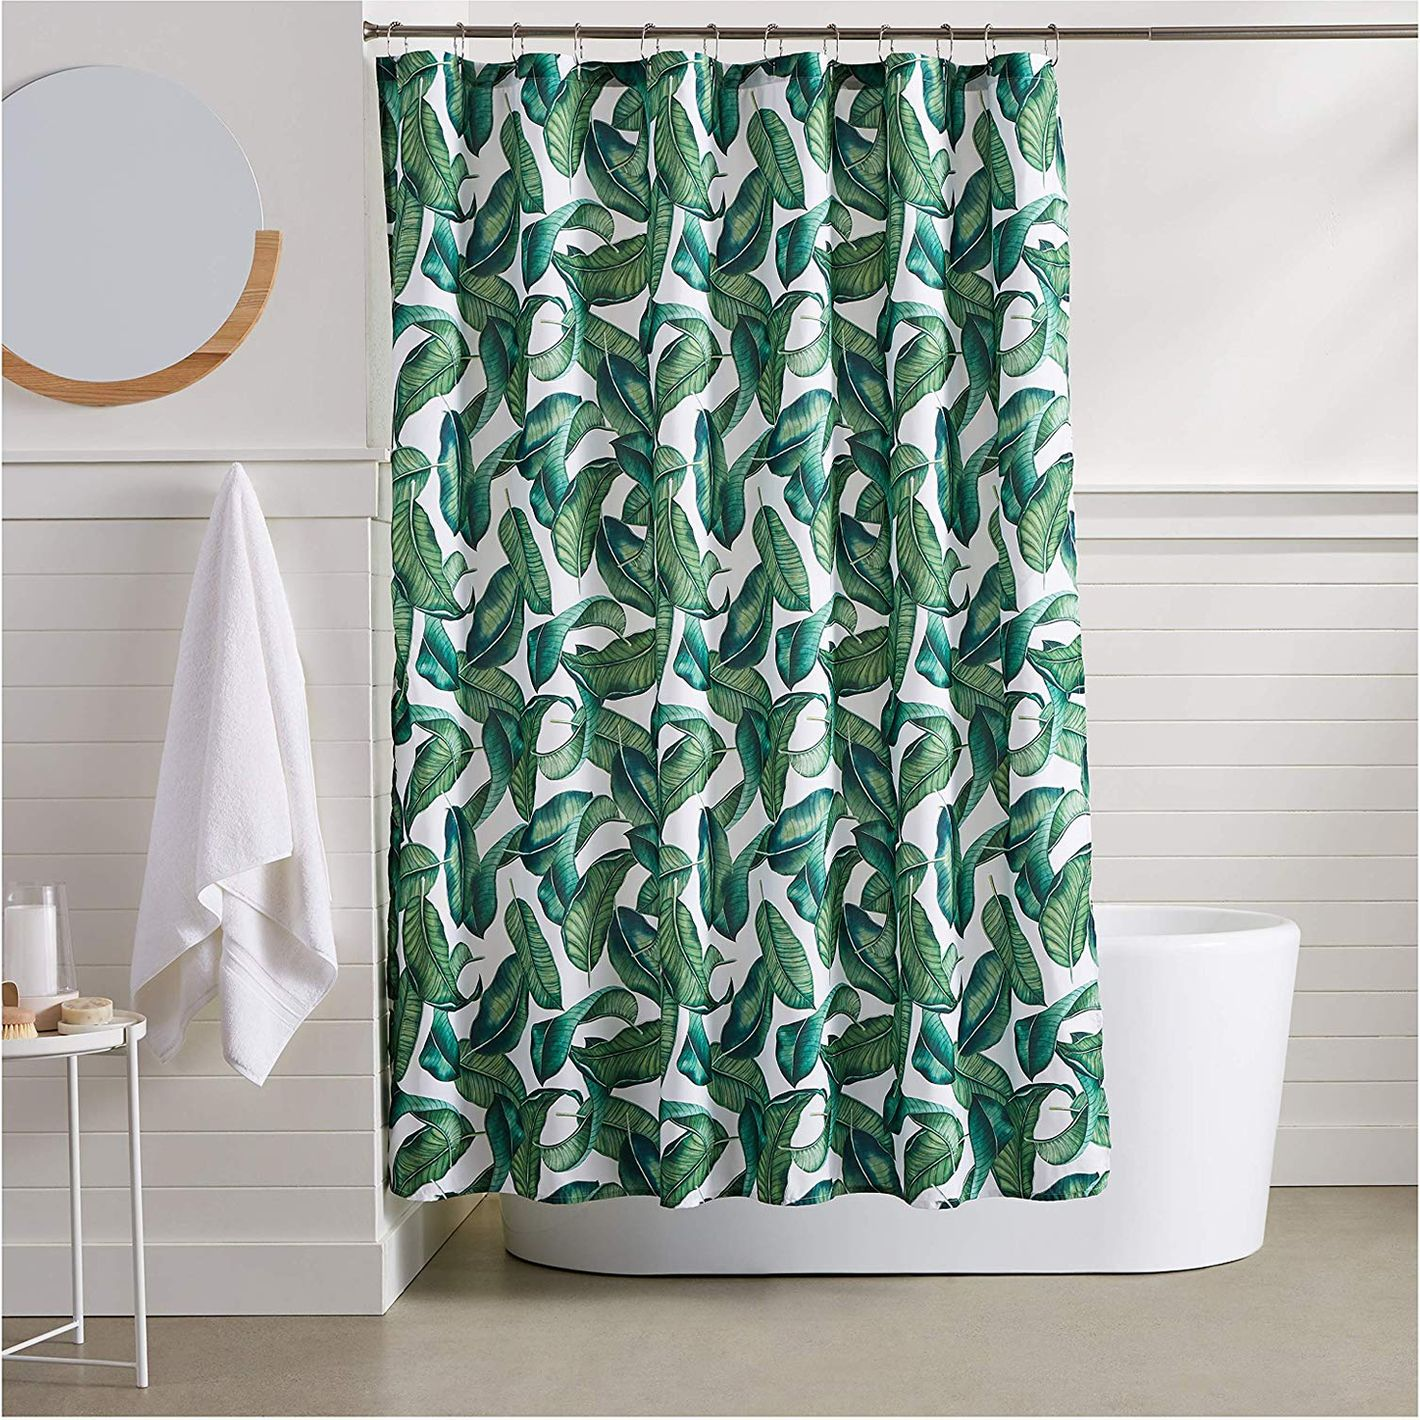 AmazonBasics Tropical Shower Curtain